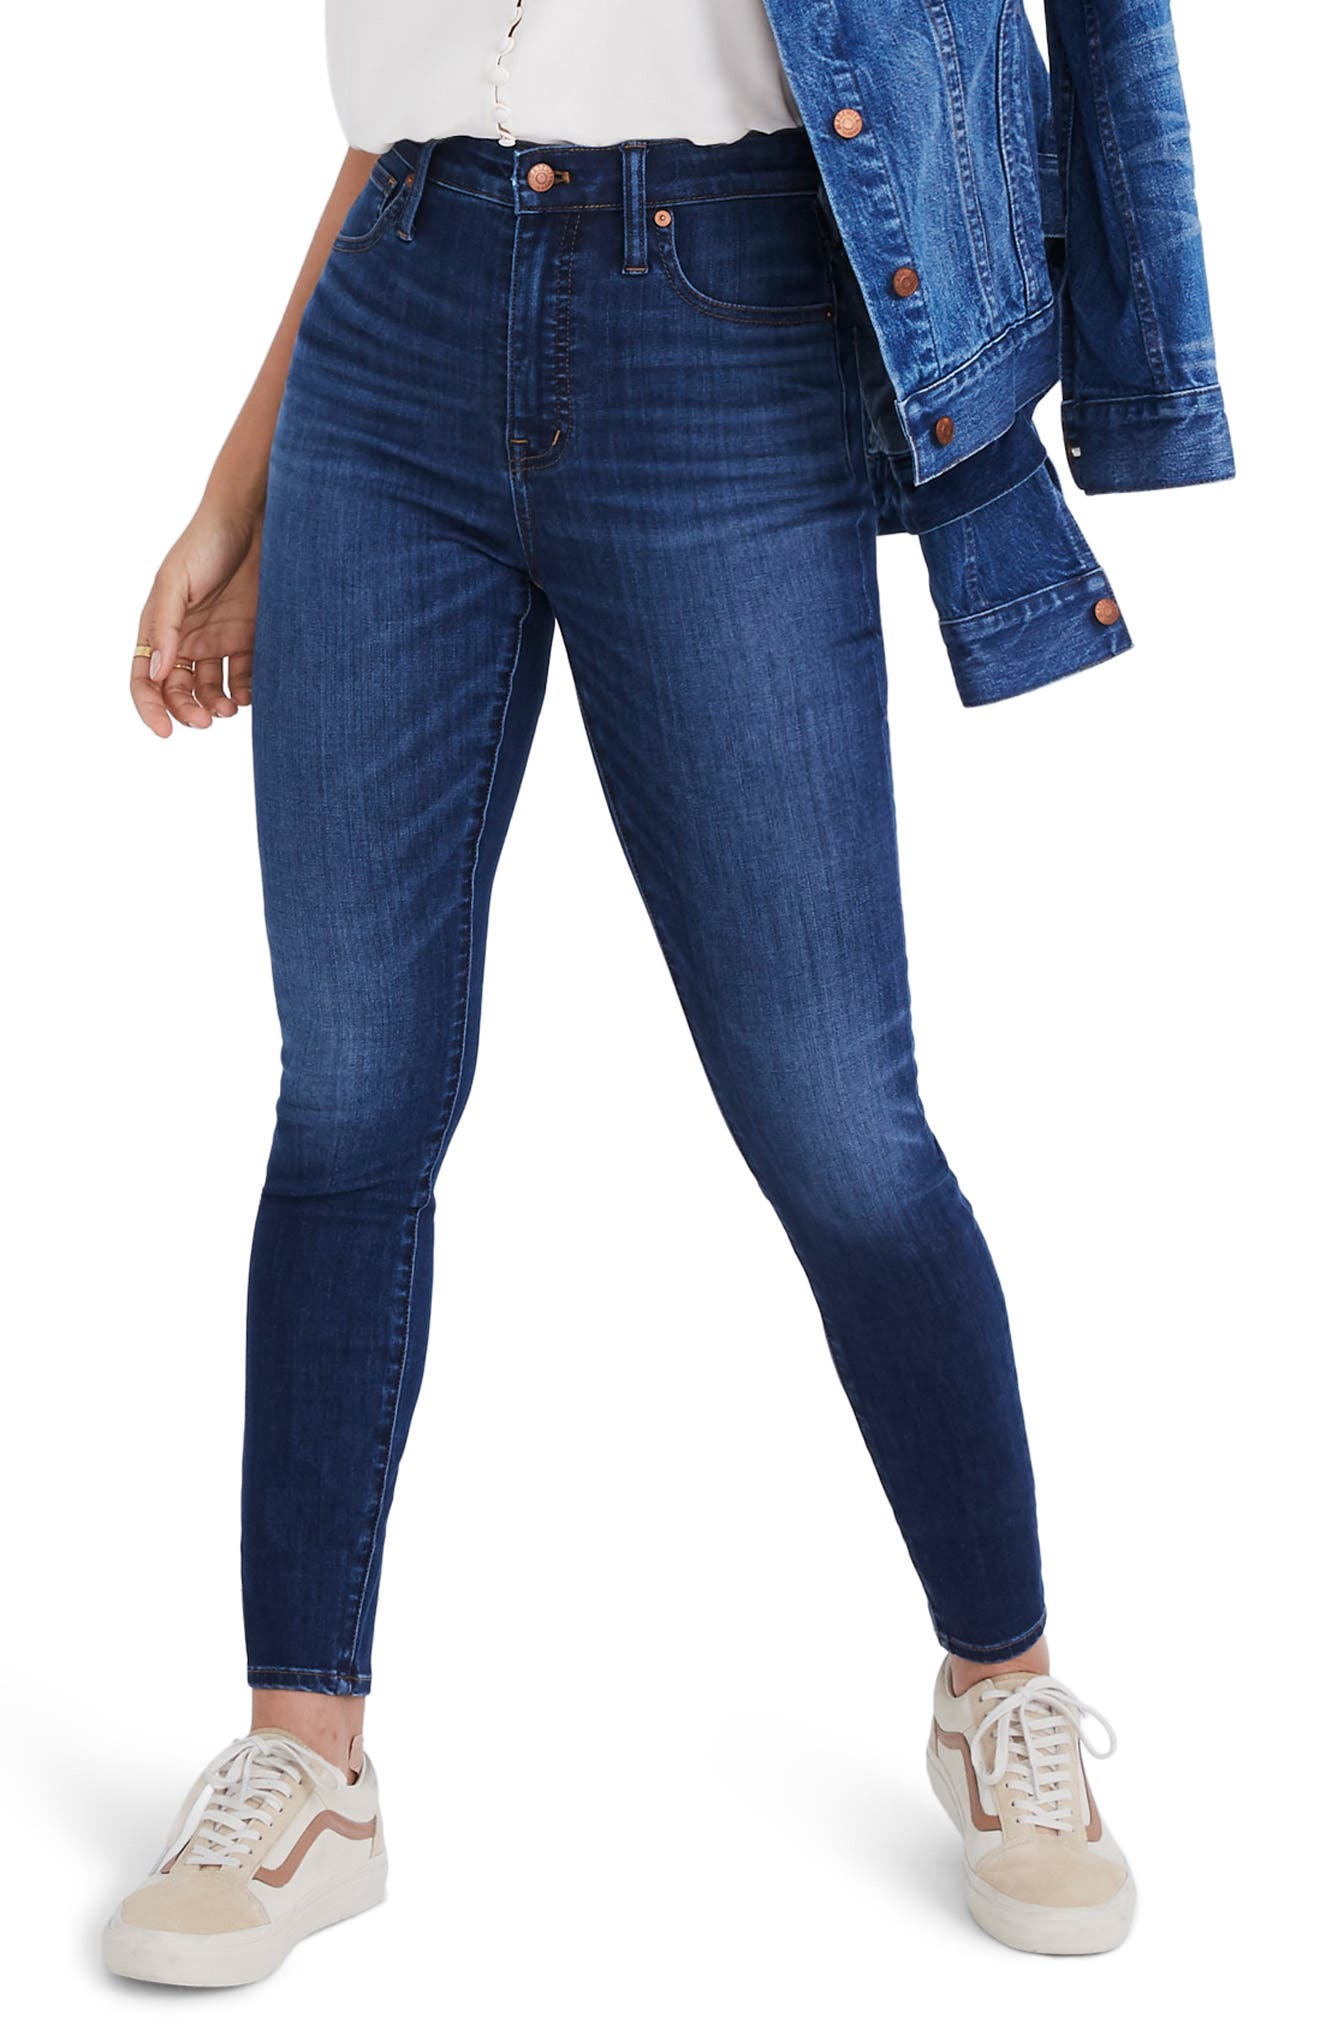 339ff15fda752 jeans for curvy women | Nordstrom